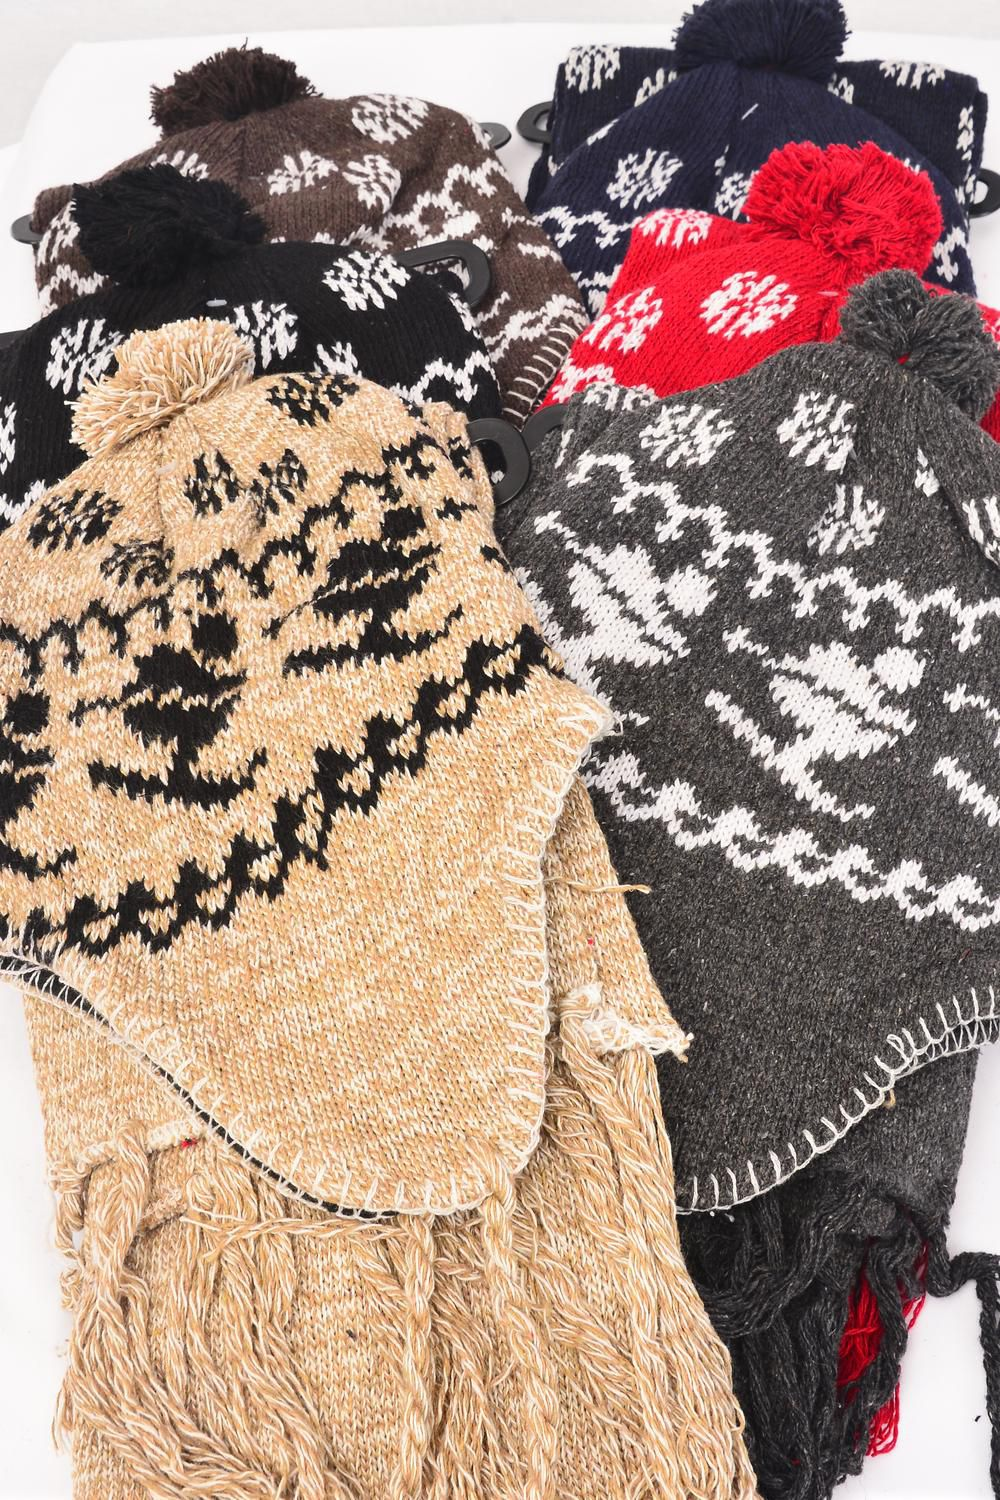 "Scarf & Hat Sets Snow Flake & Ski Head wear/6 sets per PacK 1/2 DZ Pack,Scarf Size-64""x 8"" Wide,Colors-1 Black,1 Red, 1Gray,1 Khaki,1 Brown,1 Navy,6 Color Mix,OPP bag & UPC Code -"